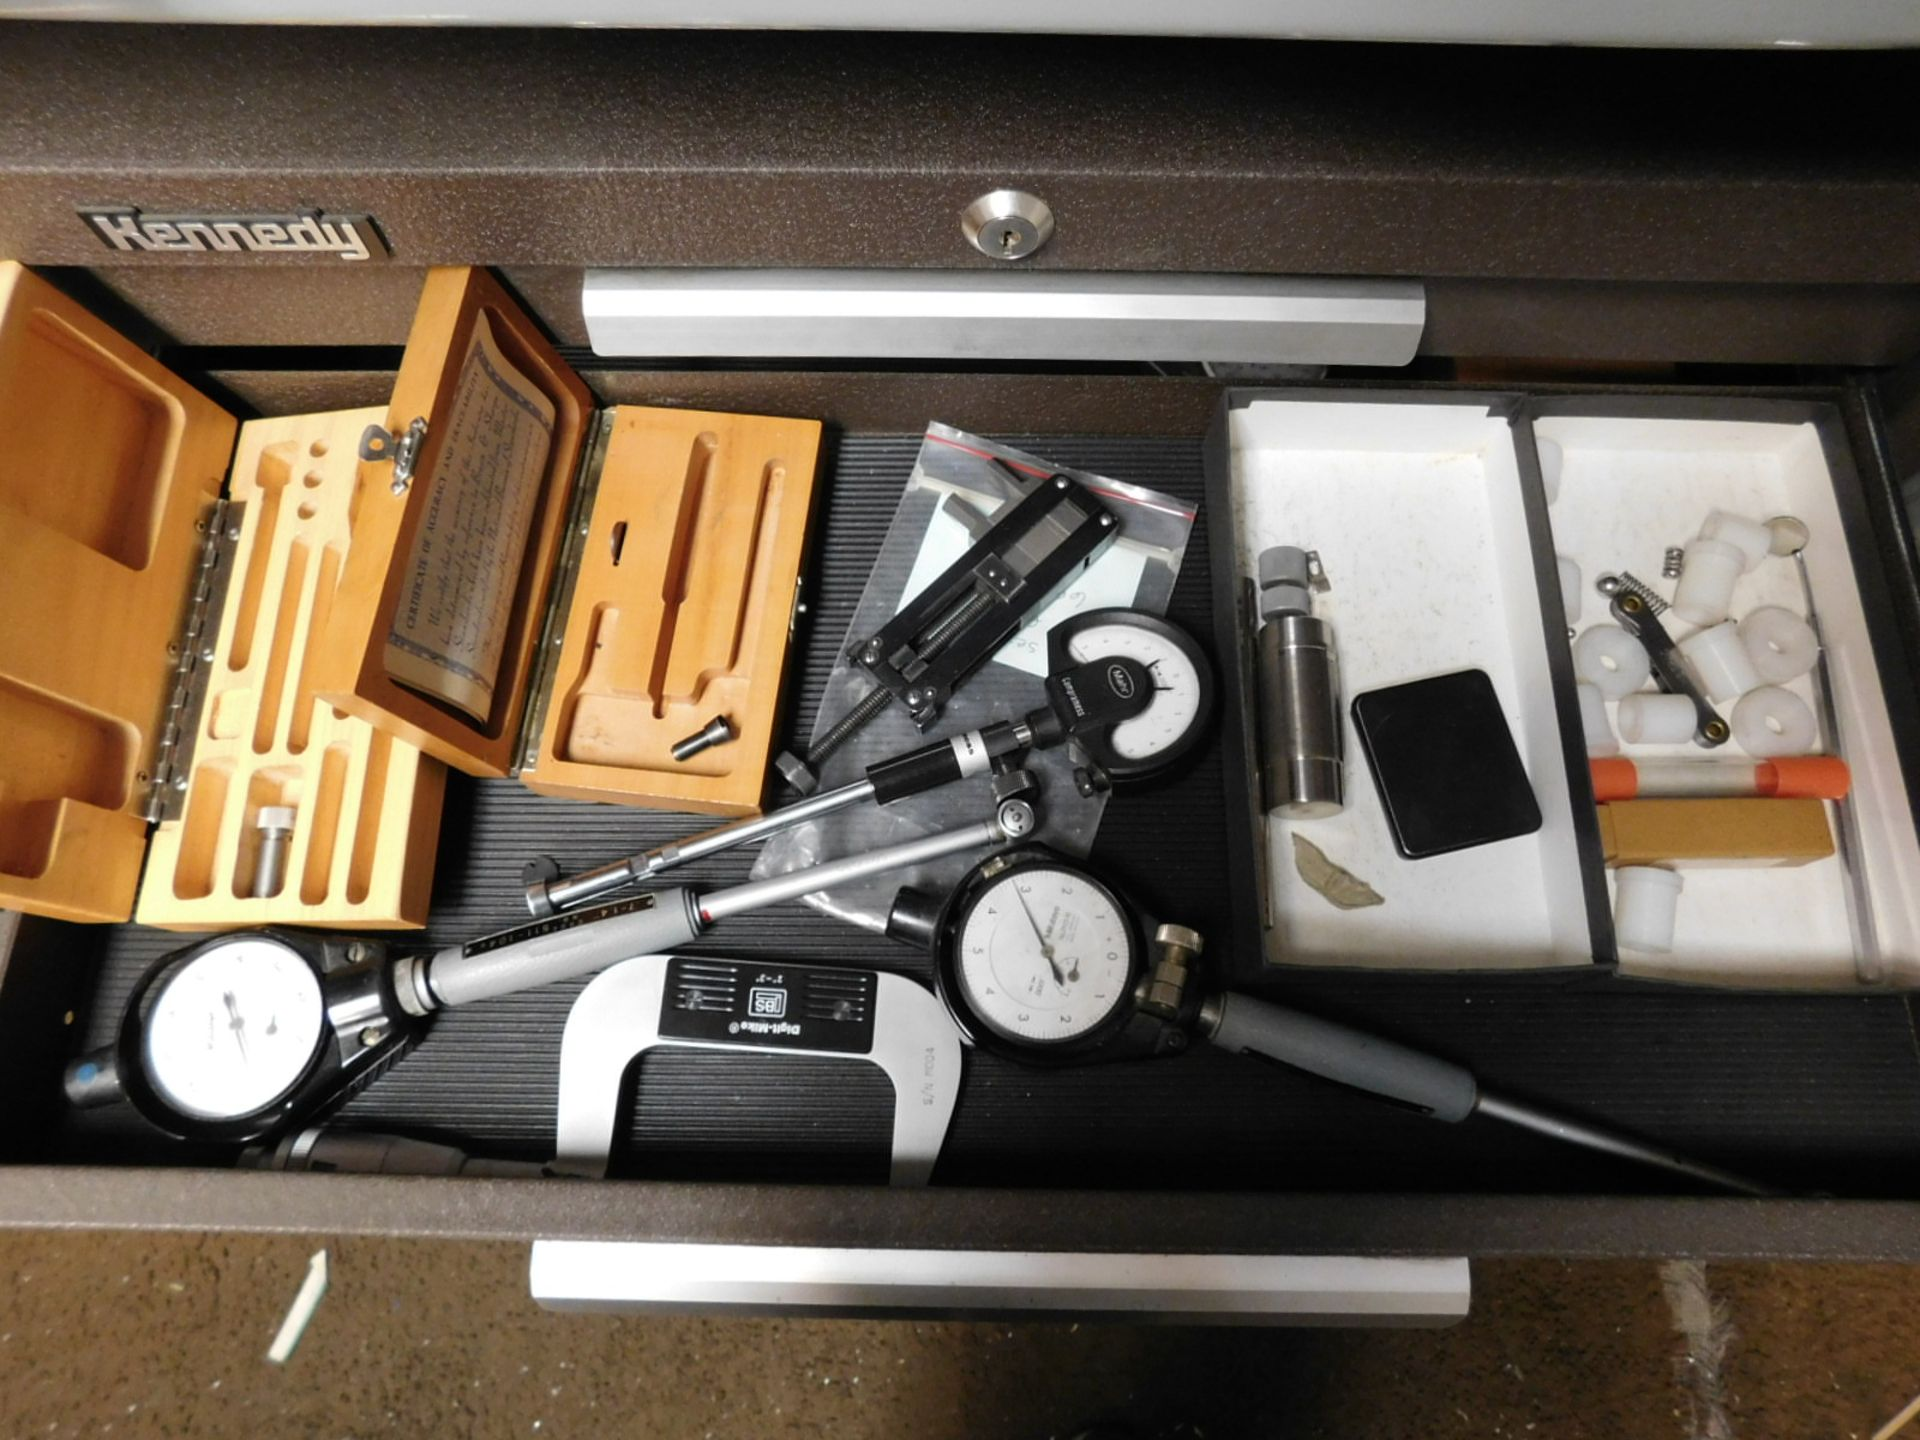 Lot 8 - LOT - KENNEDY 4-DRAWER TOOL BOX, W/ KEYS AND ALL CONTENTS, TO INCLUDE: MICROMETERS, DIAL GAGES,